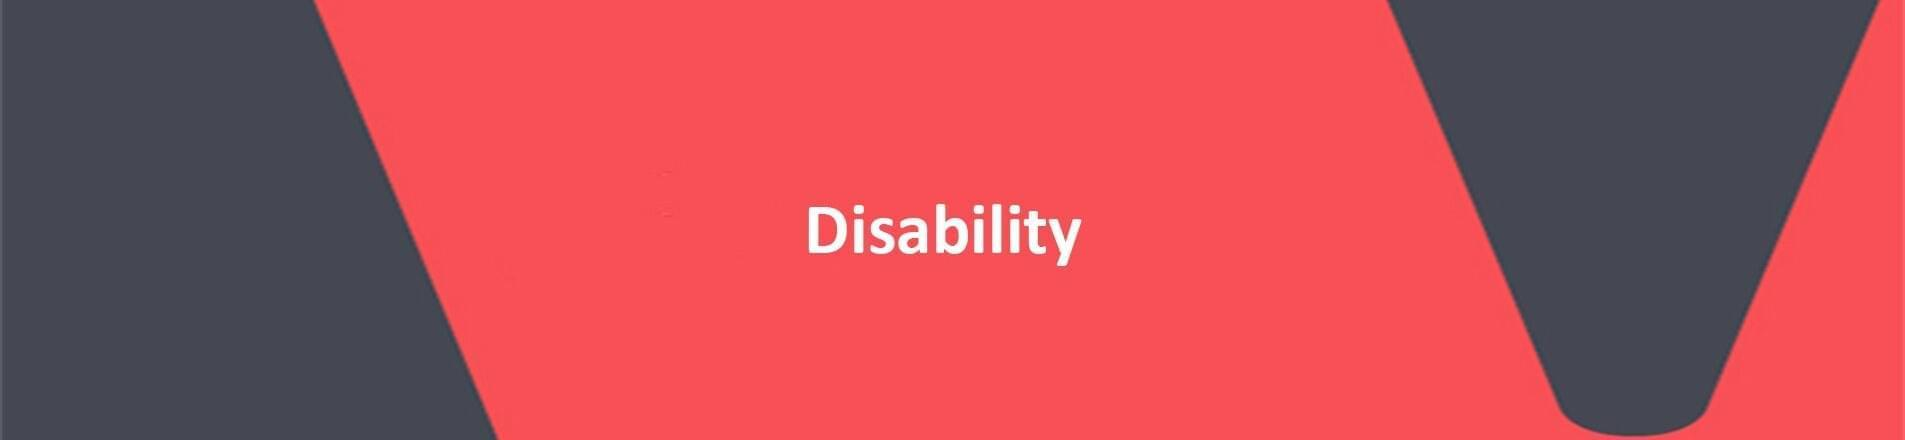 Disability on red VERCIDA background